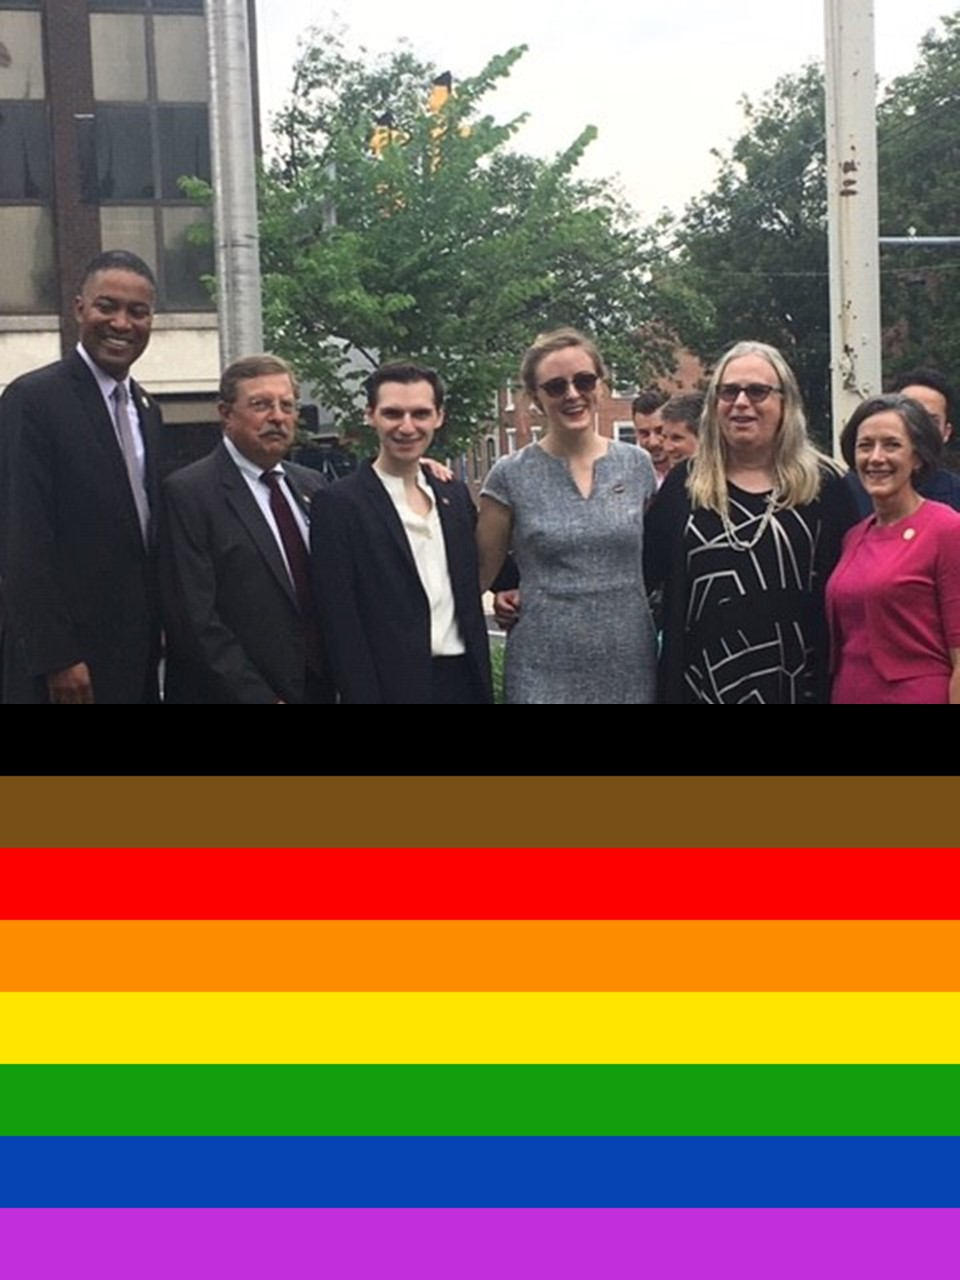 Montco celebrates Pride Month and commemorates 50th anniversary of Stonewall Riots